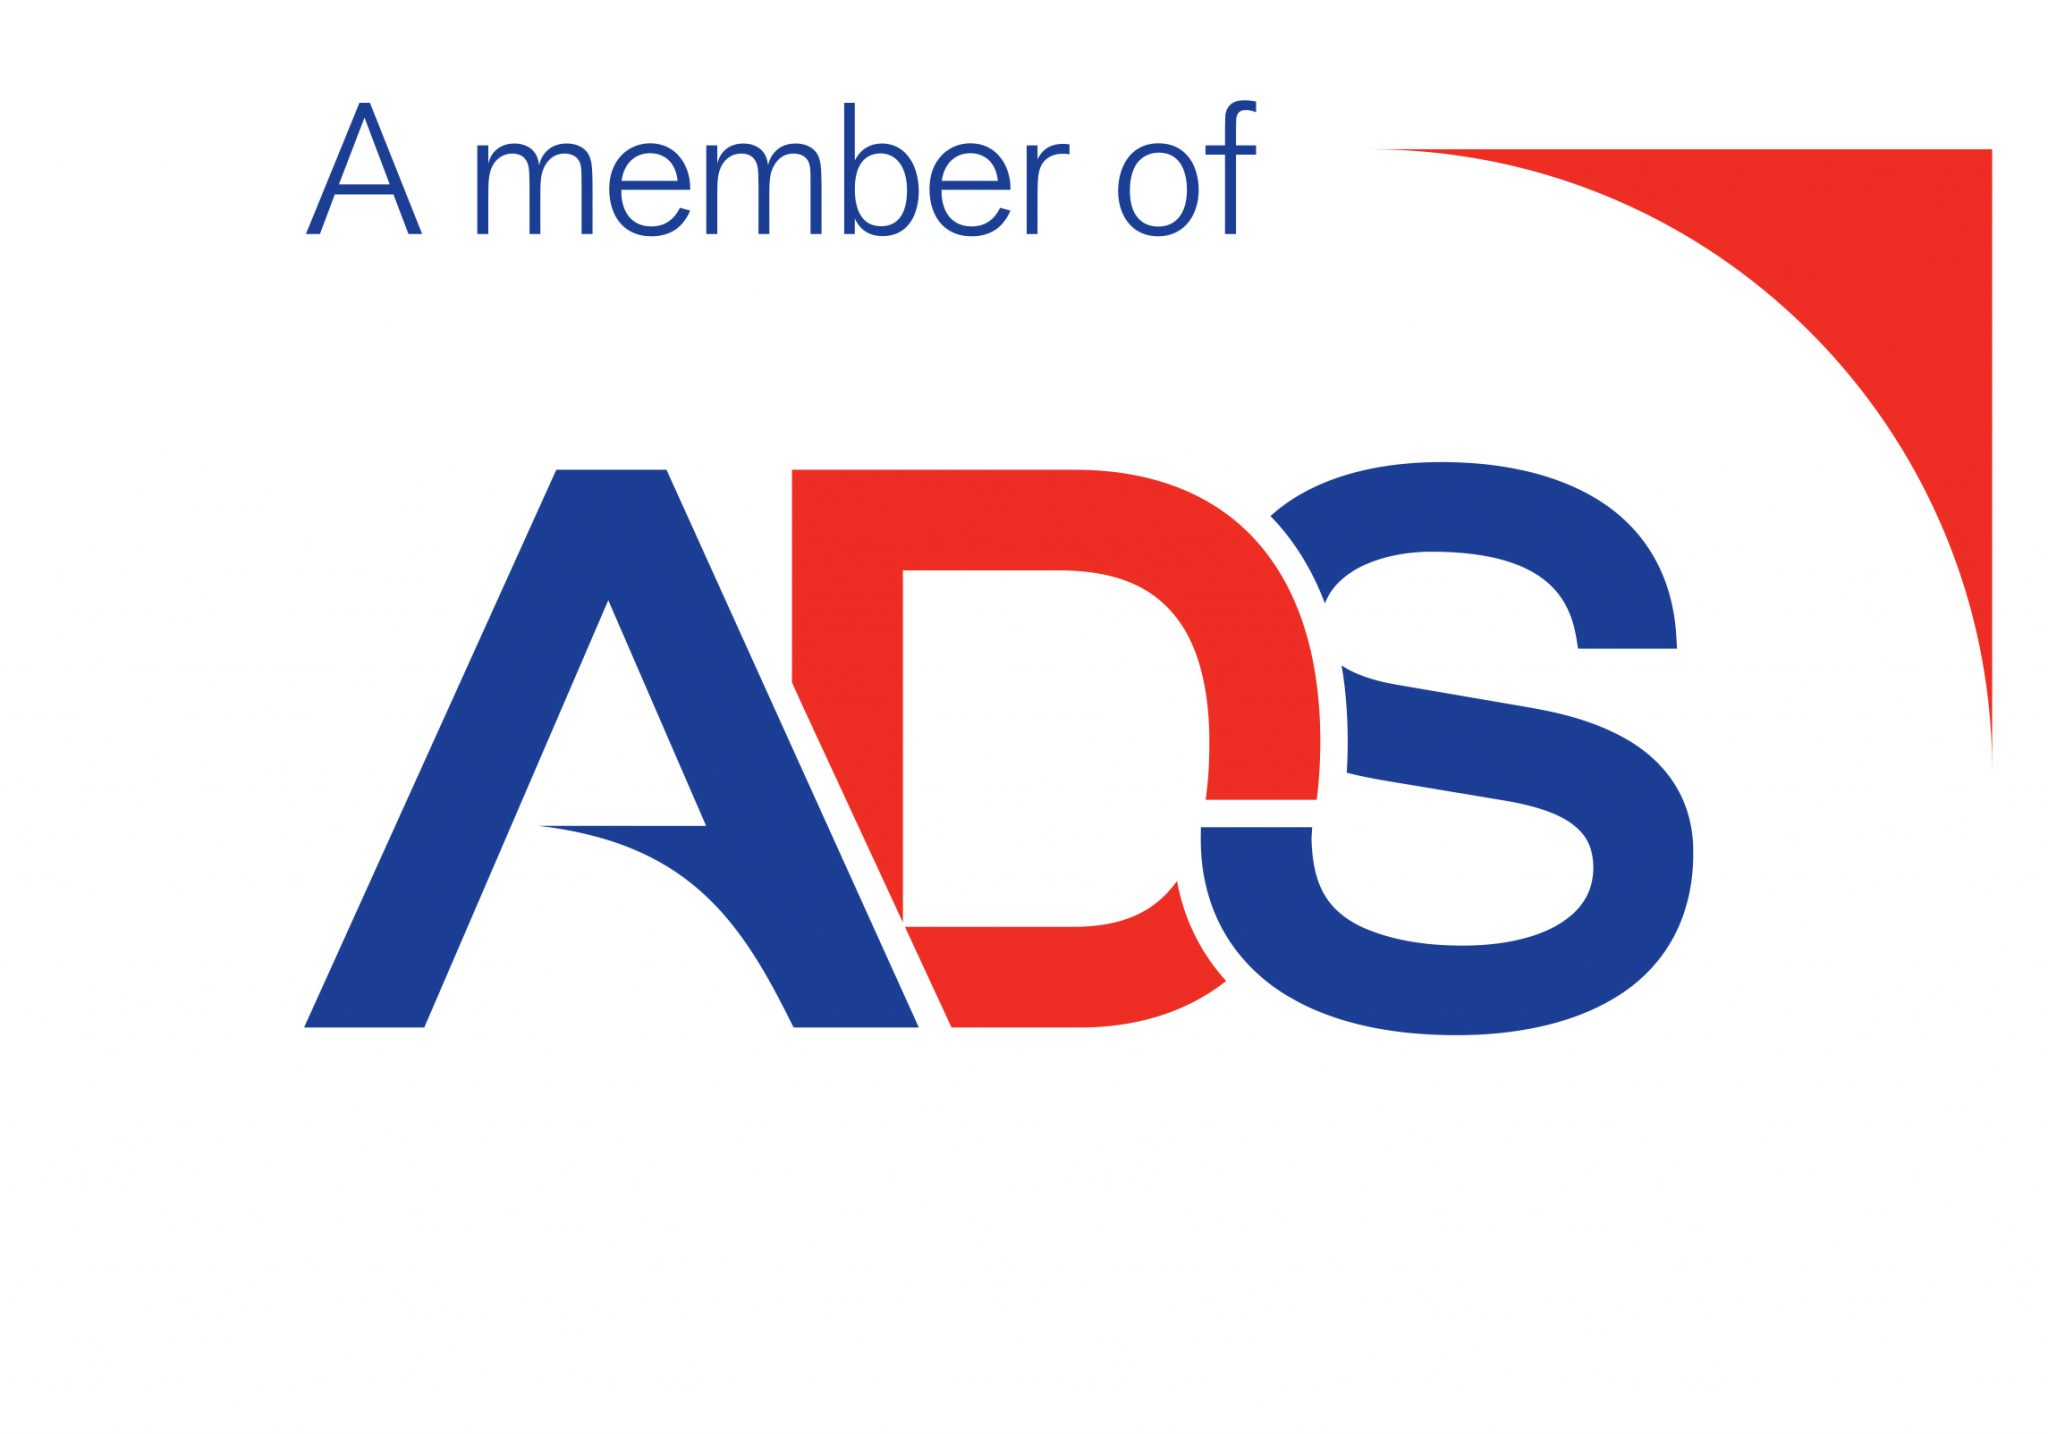 A member of ADS Logo